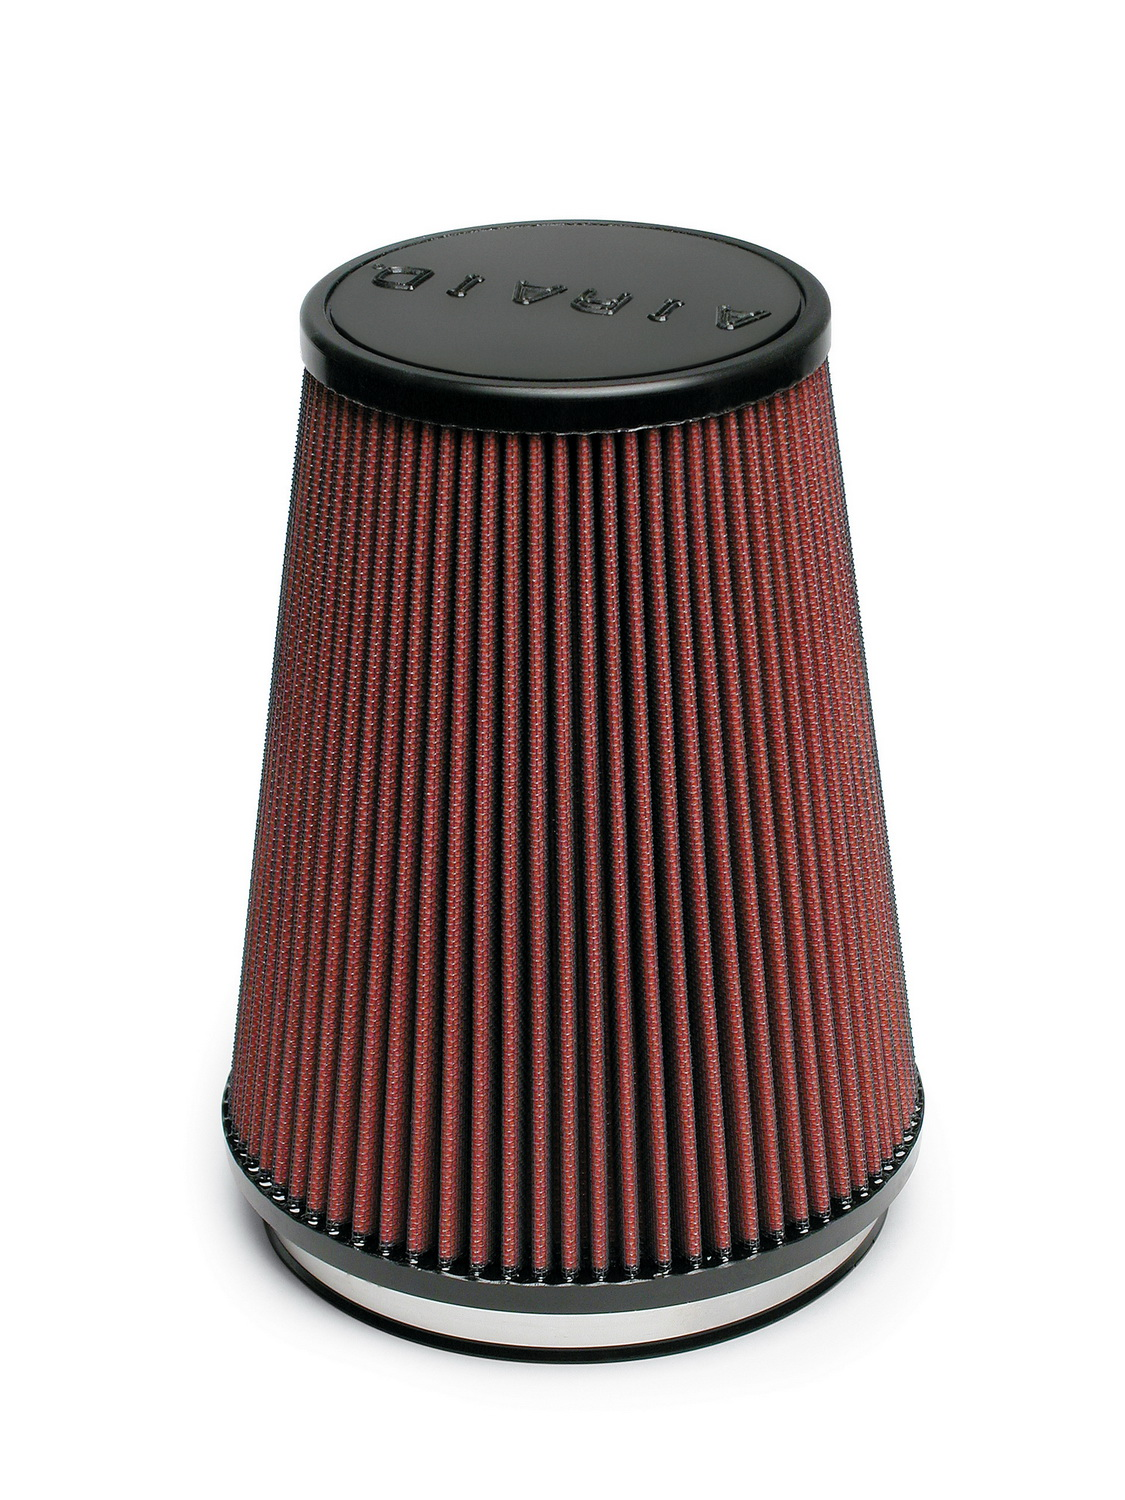 Airaid 700-469 Universal Air Filter 700-469